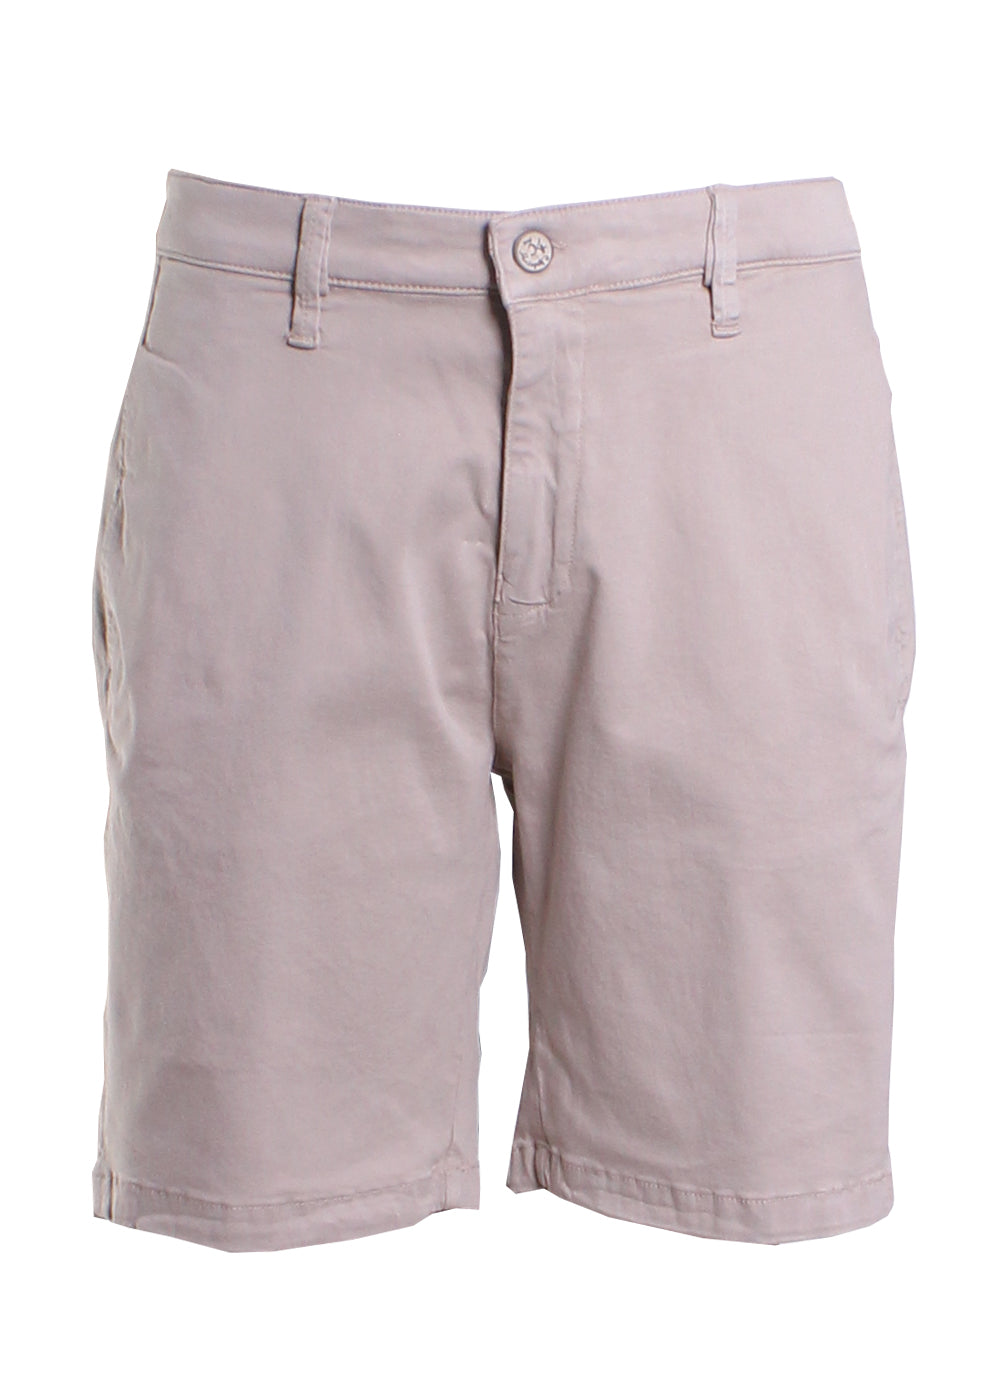 34 Heritage Nevada Shorts in Stone Twill